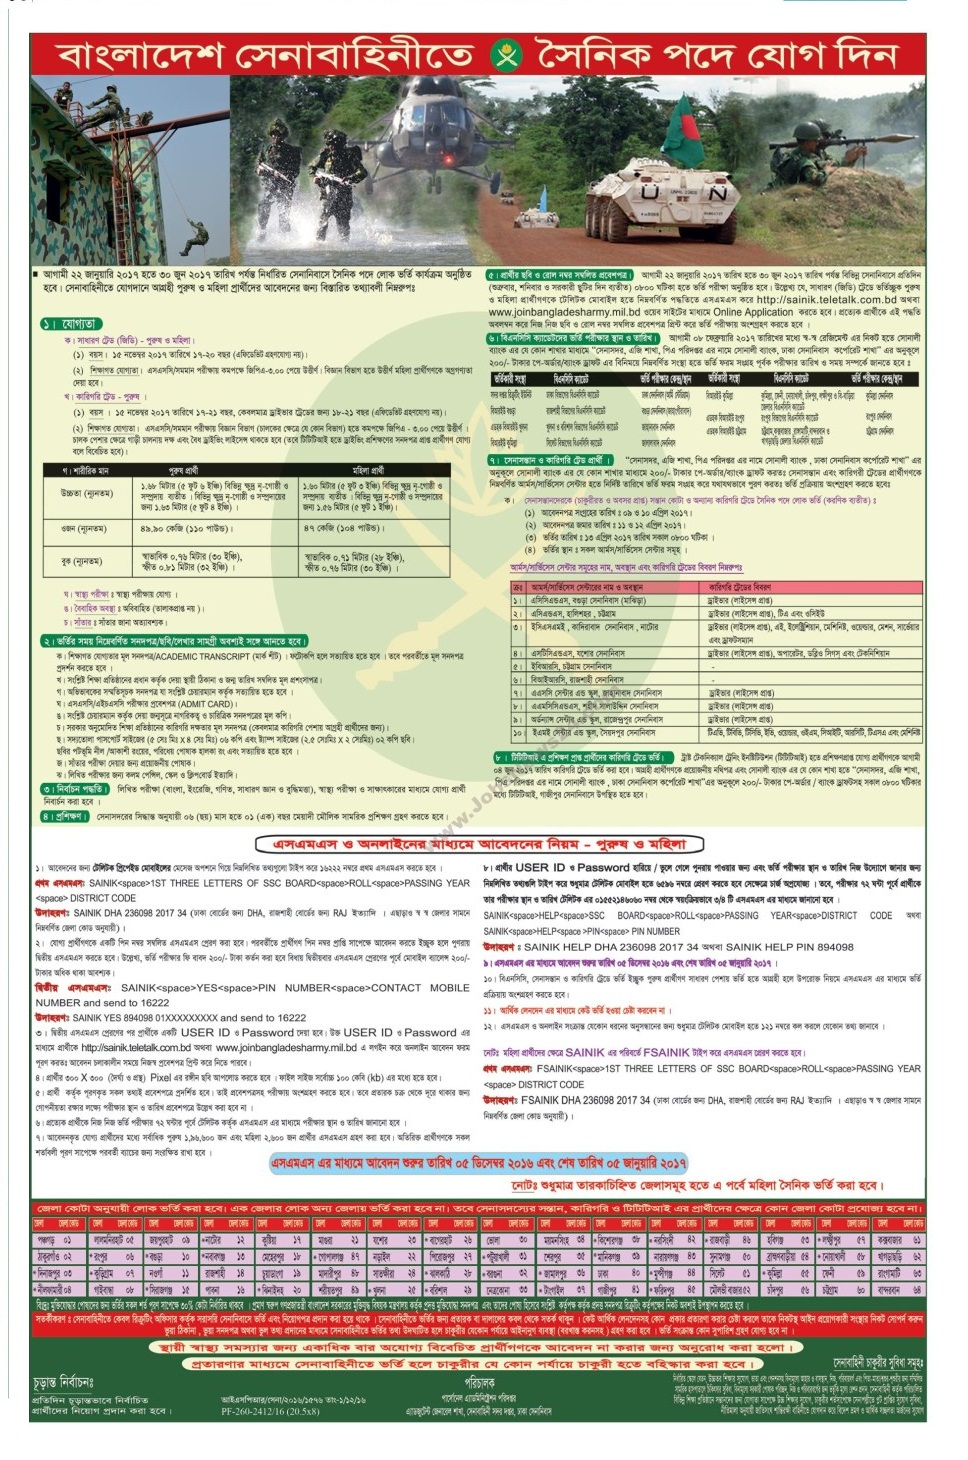 Bangladesh Army Job Circular December 2016